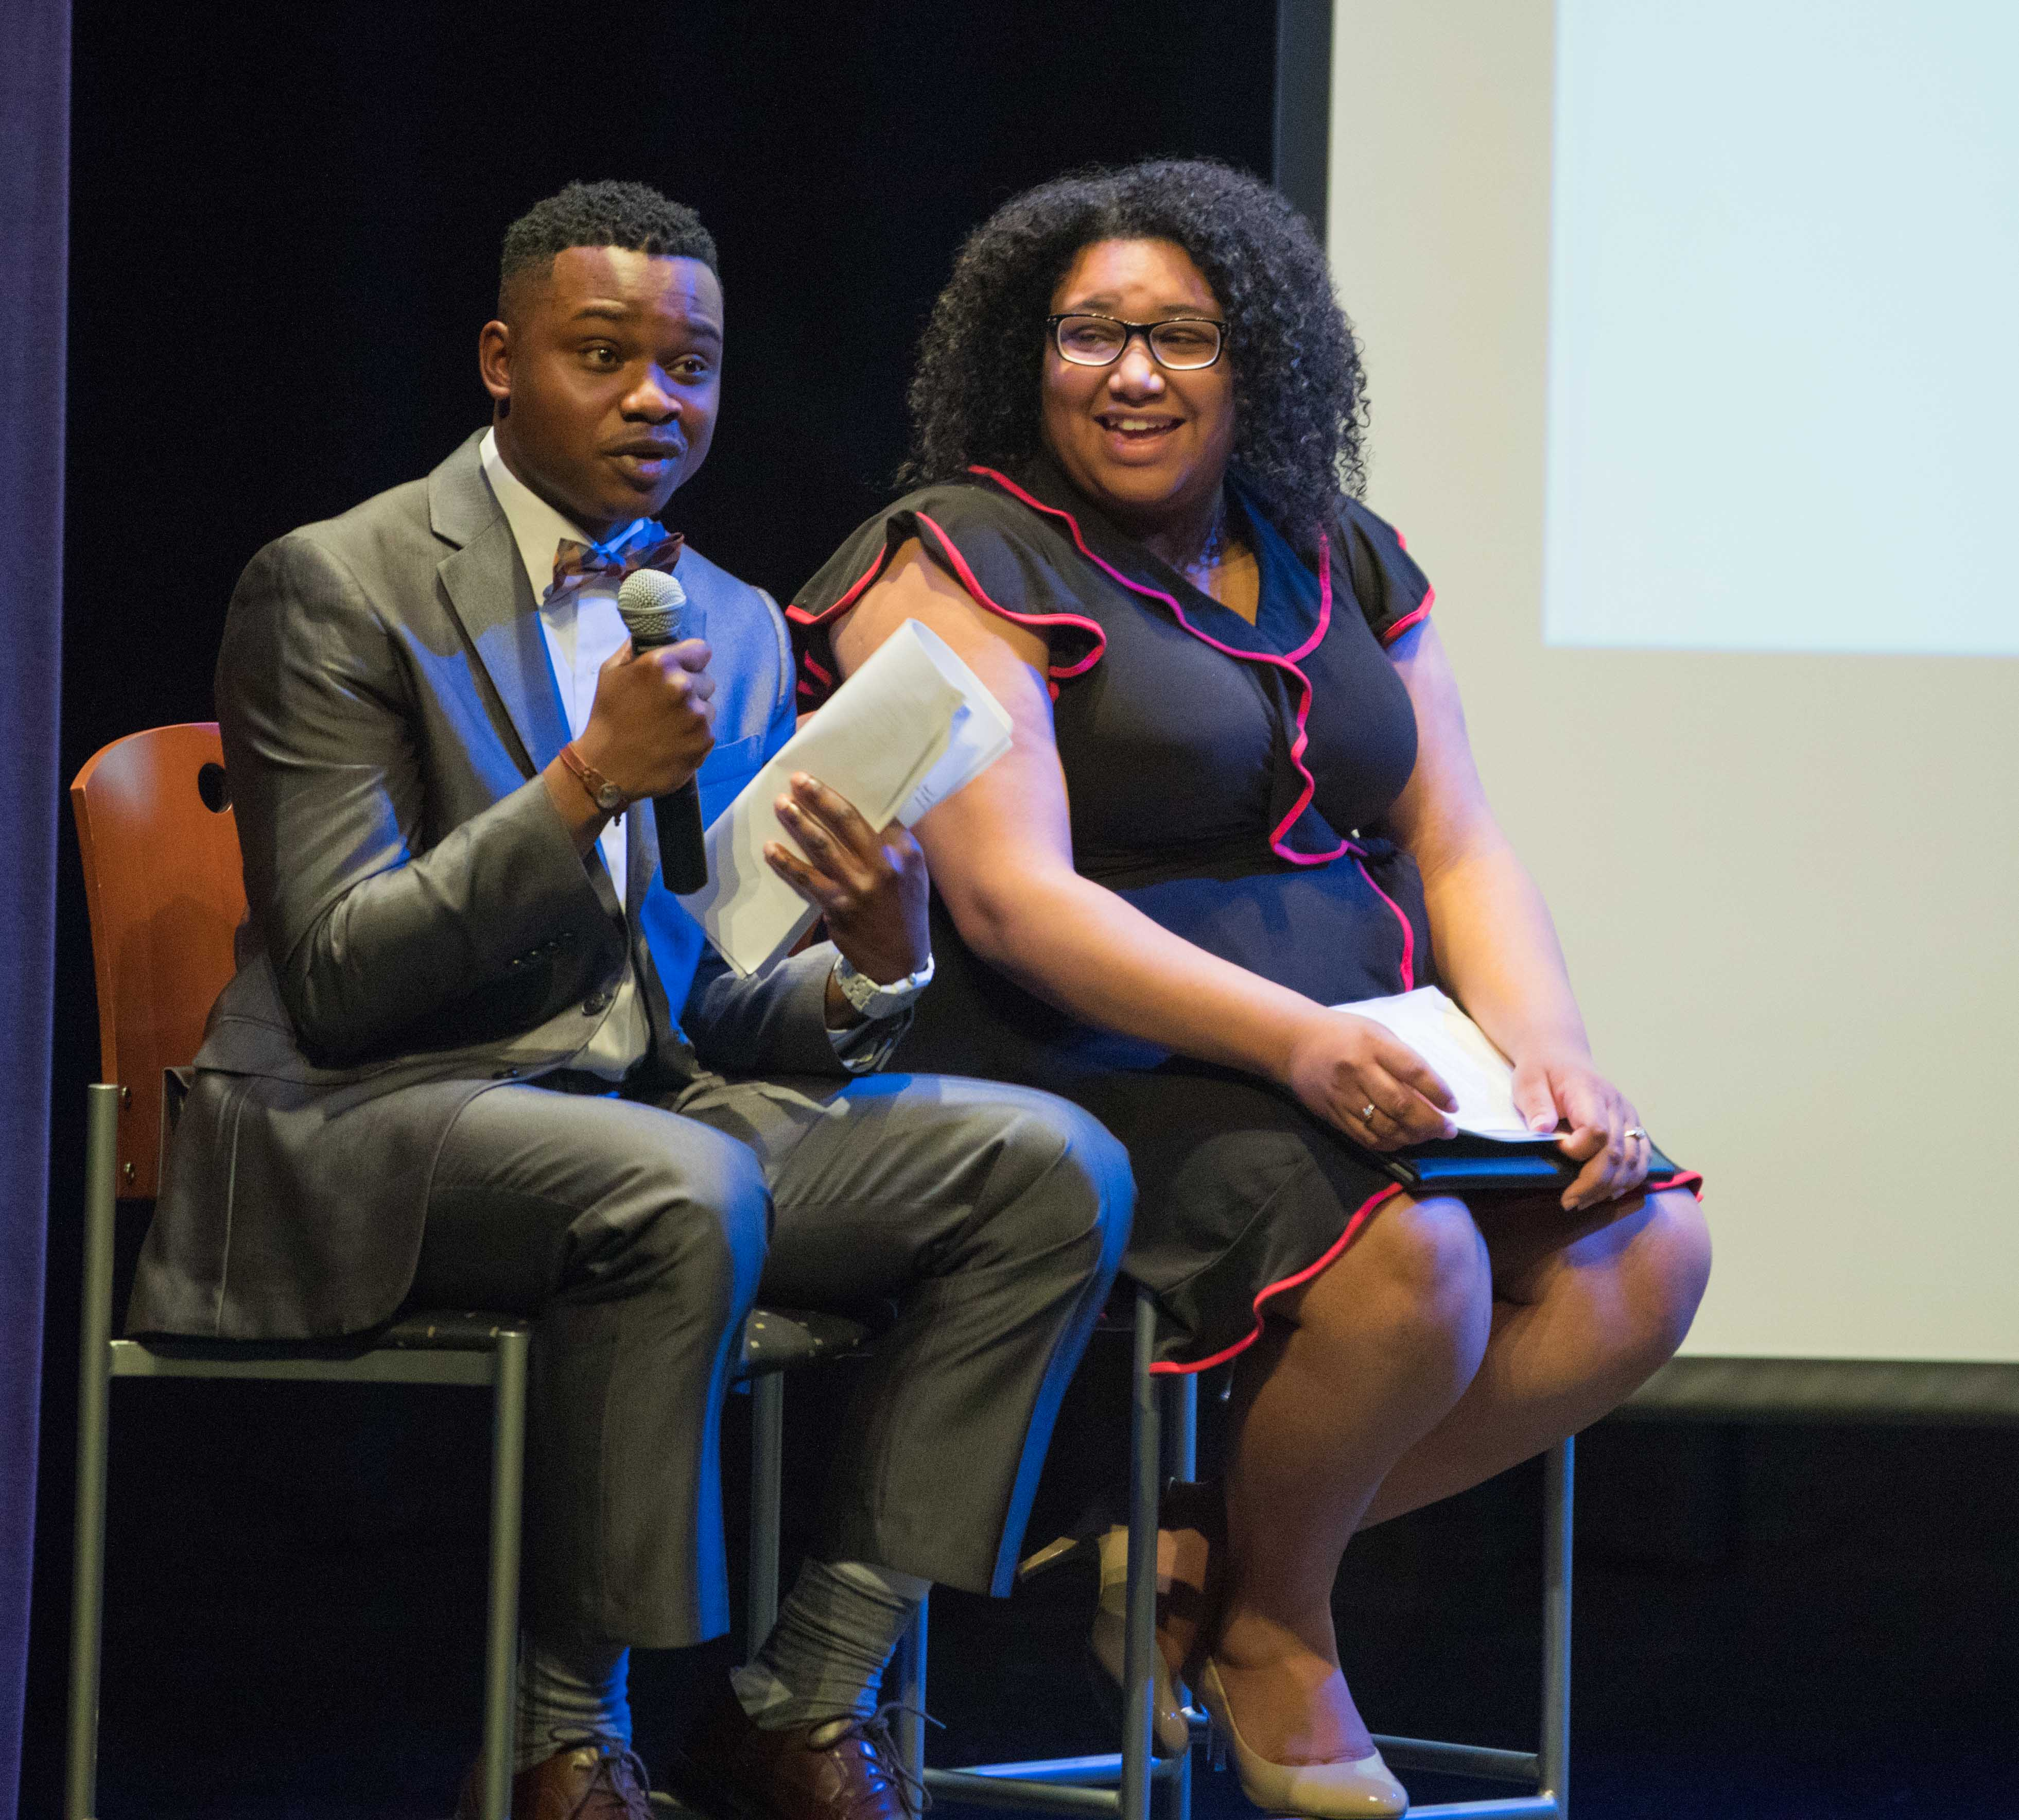 Ricky Oshakuade, vice presidential candidate and presidential candidate Tracia Banuelos answers questions from the audience at the SGA presidential debate in the CAC theater.